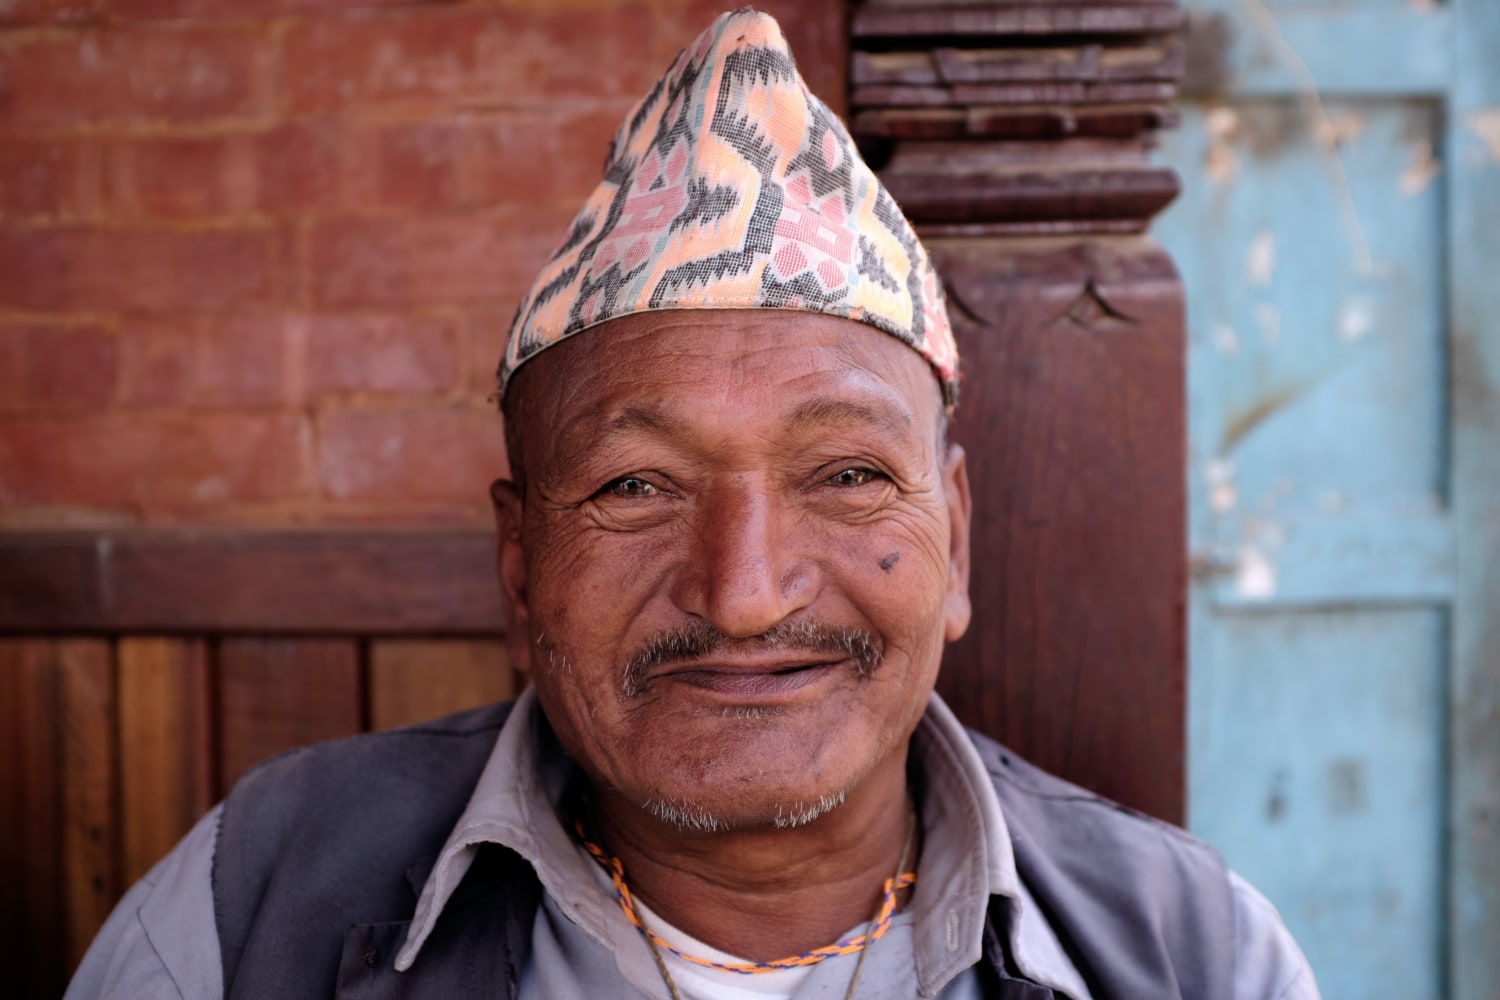 A Newari man wearing Dhaka topi smiles at camera